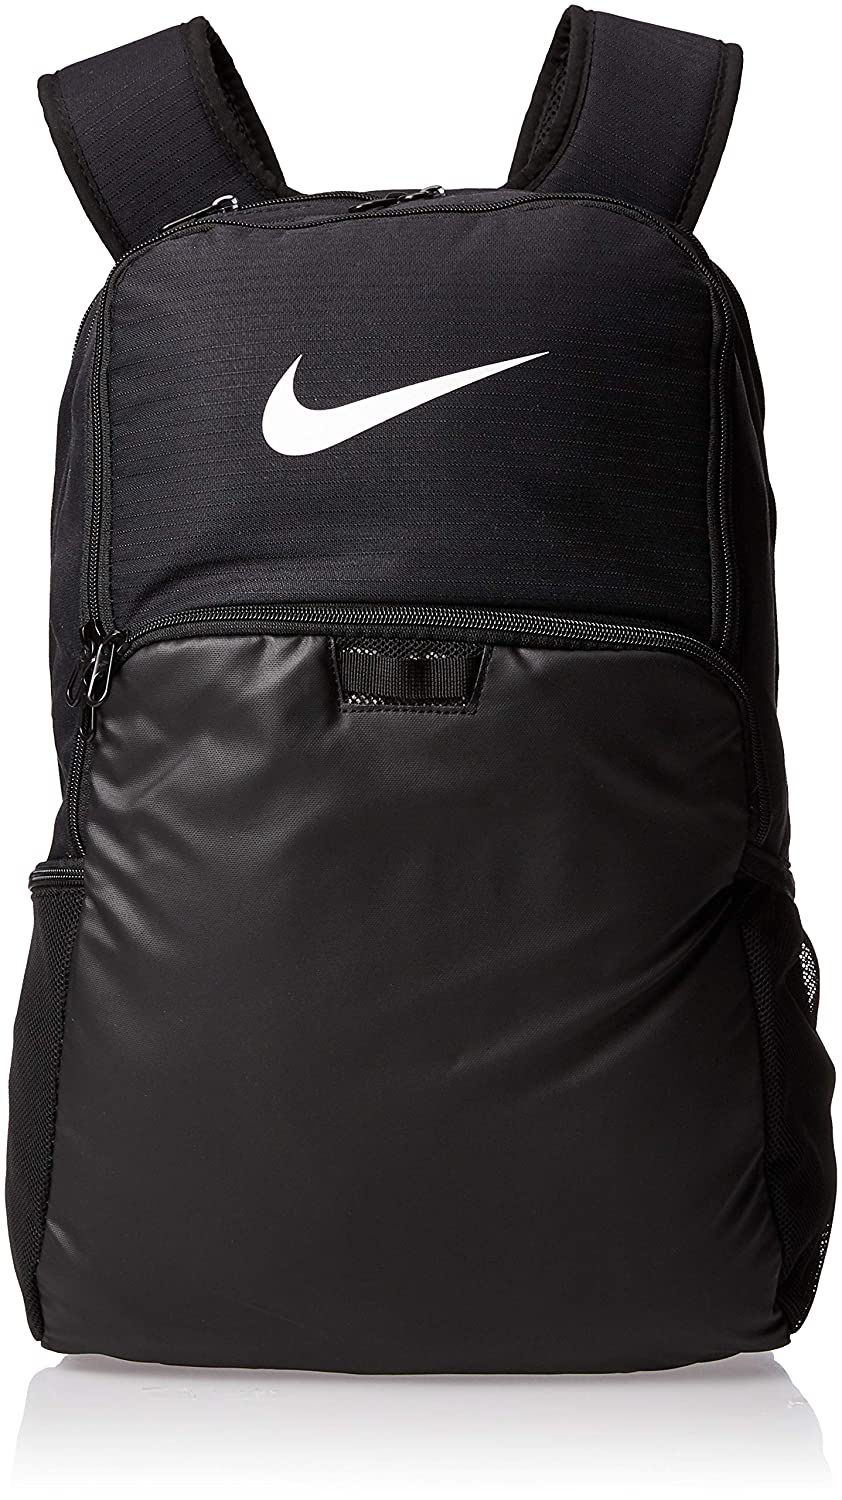 Nike Black Casual Backpack